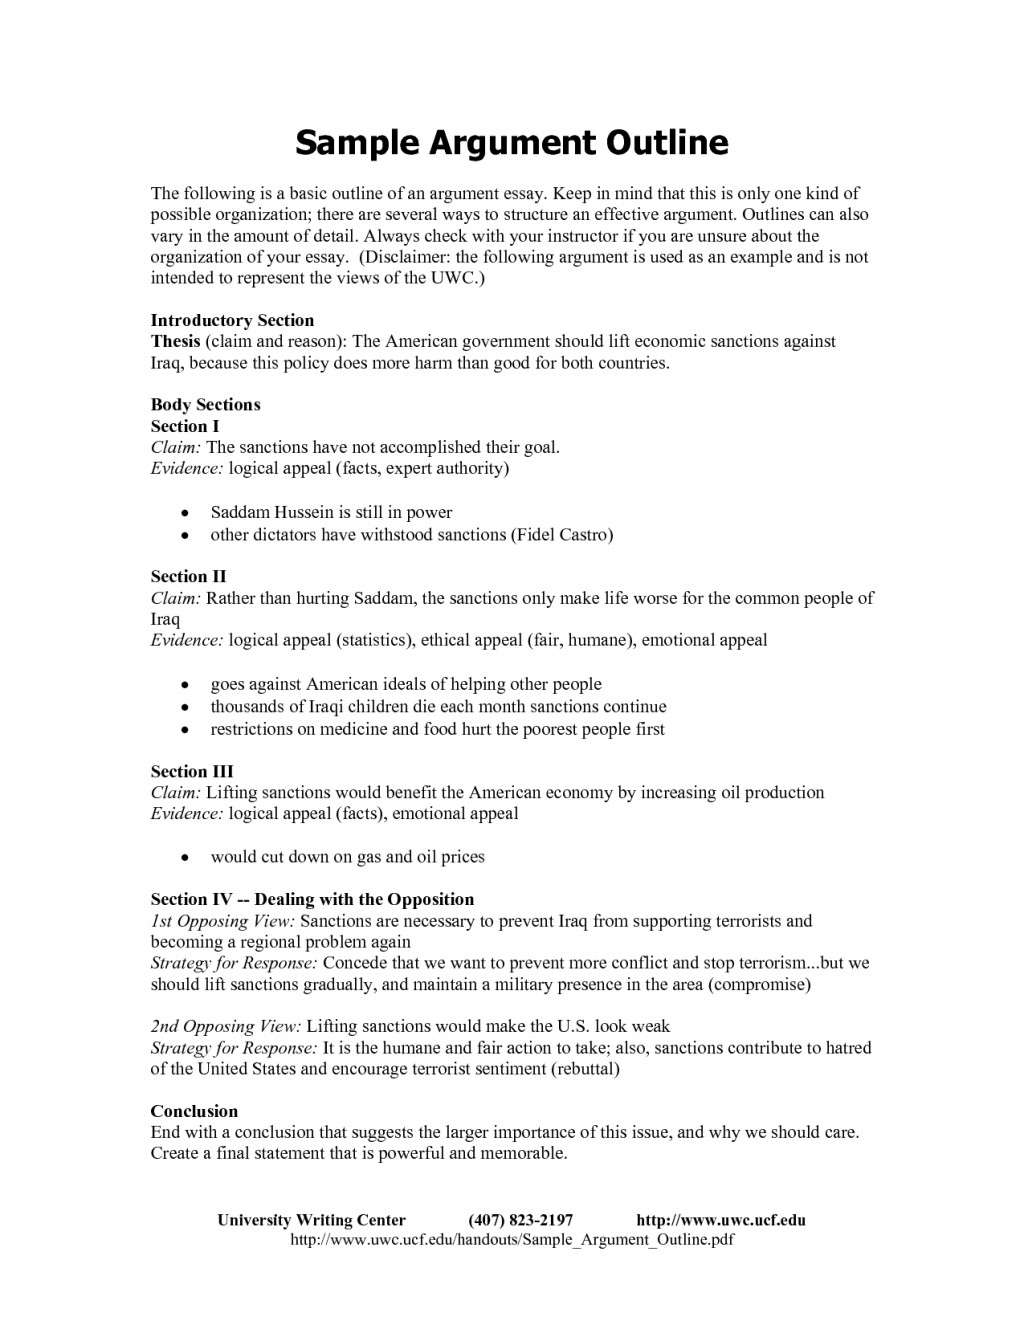 007 Example Argumentativey Outline Onneto Format For Ironviper Co How To Write An Step By Pdf Start Conclusion Thesis Statement Off Body Paragraph Ap Lang Introduction Argument Remarkable Essay Sample 5 Argumentative Template Blank Large